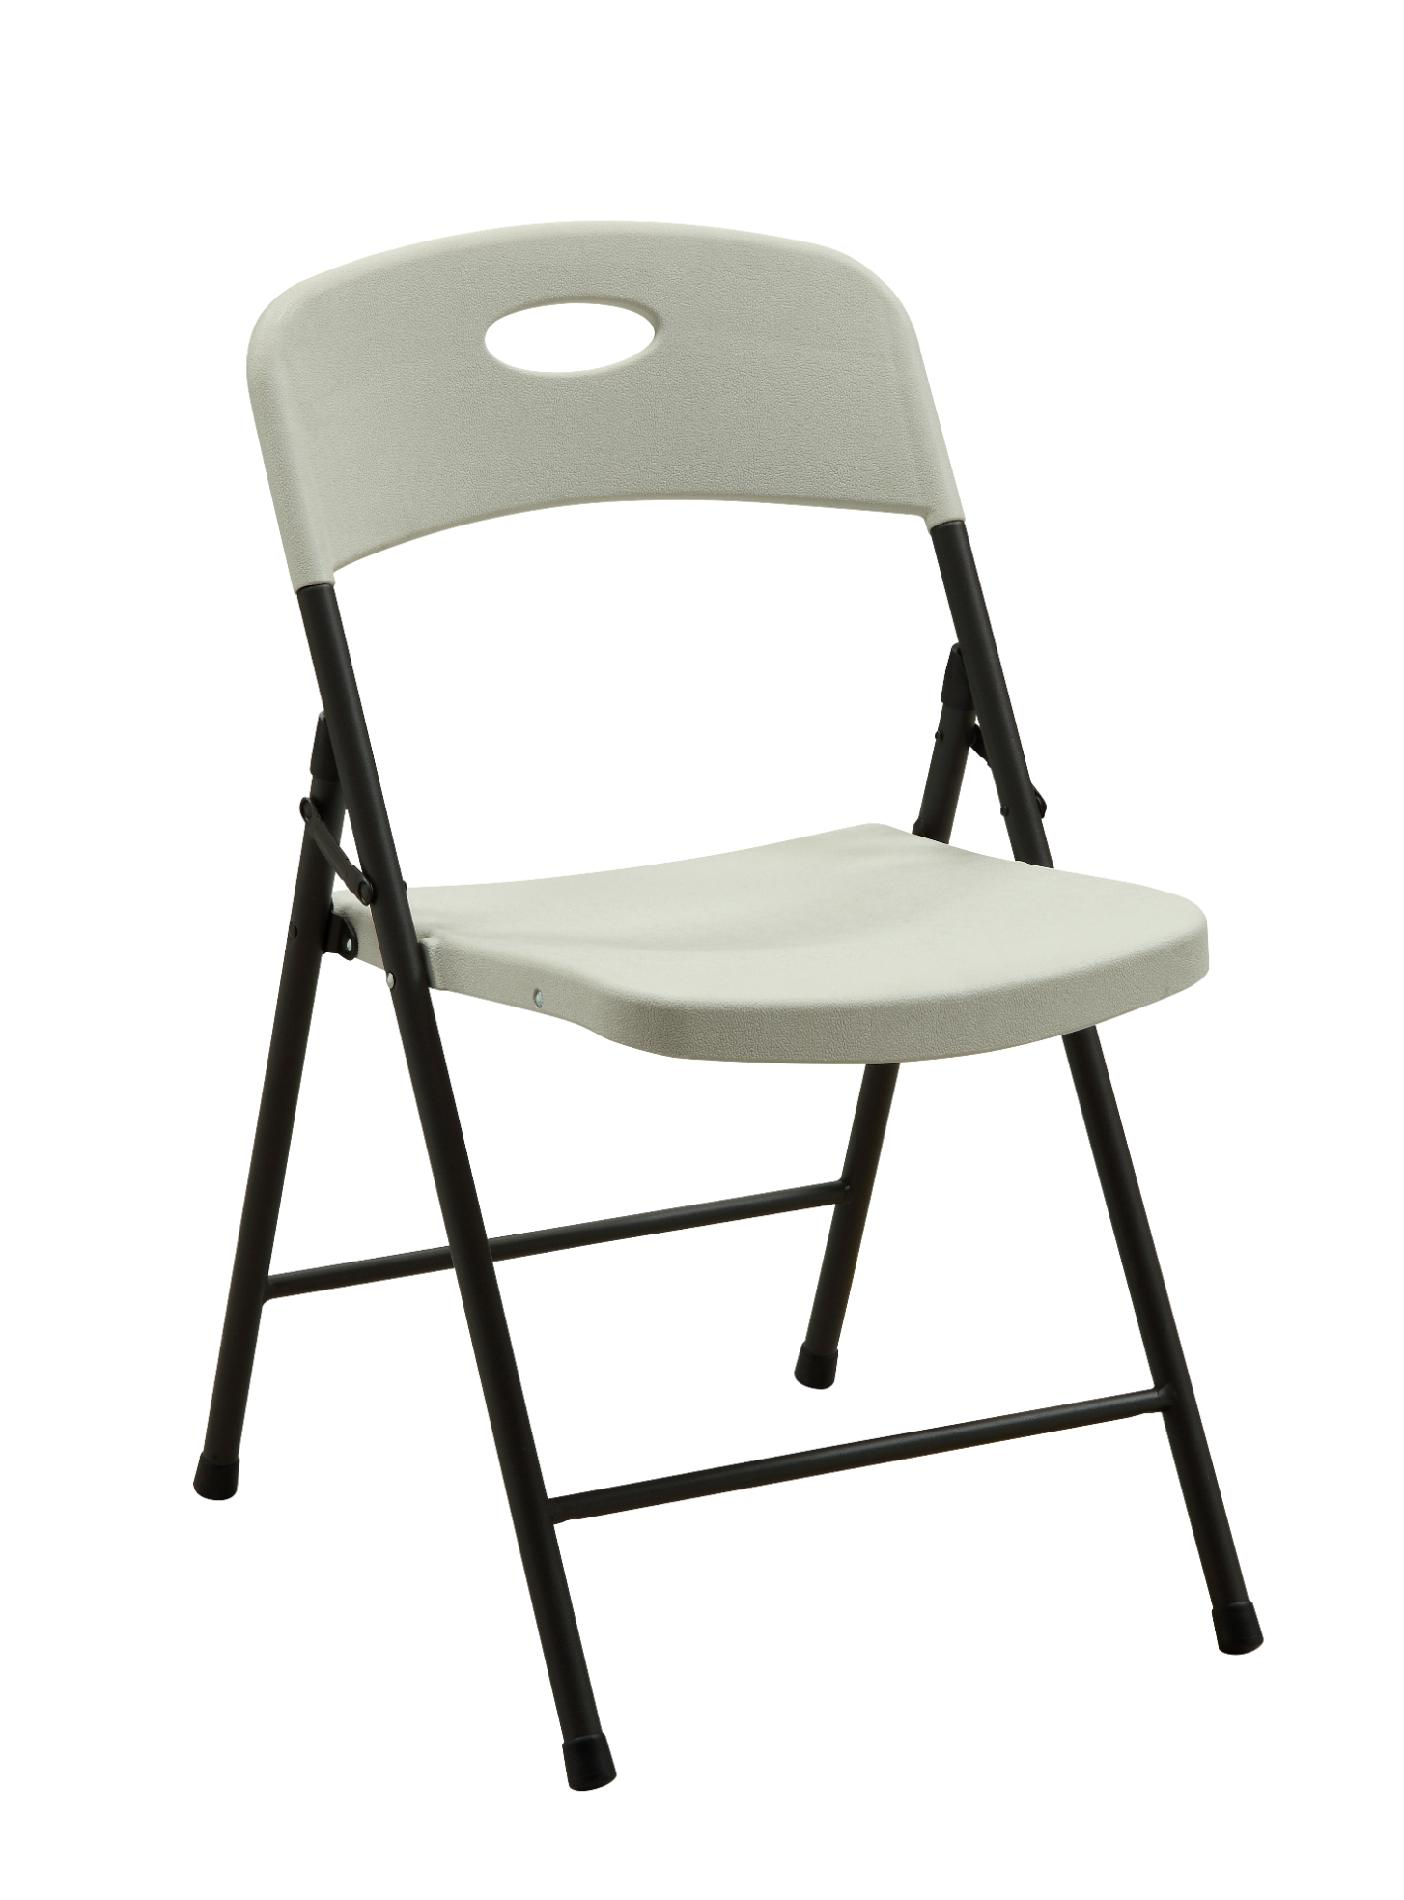 Lightweight Folding Chair Keeping Your Guests in Good Cheer with Kmart